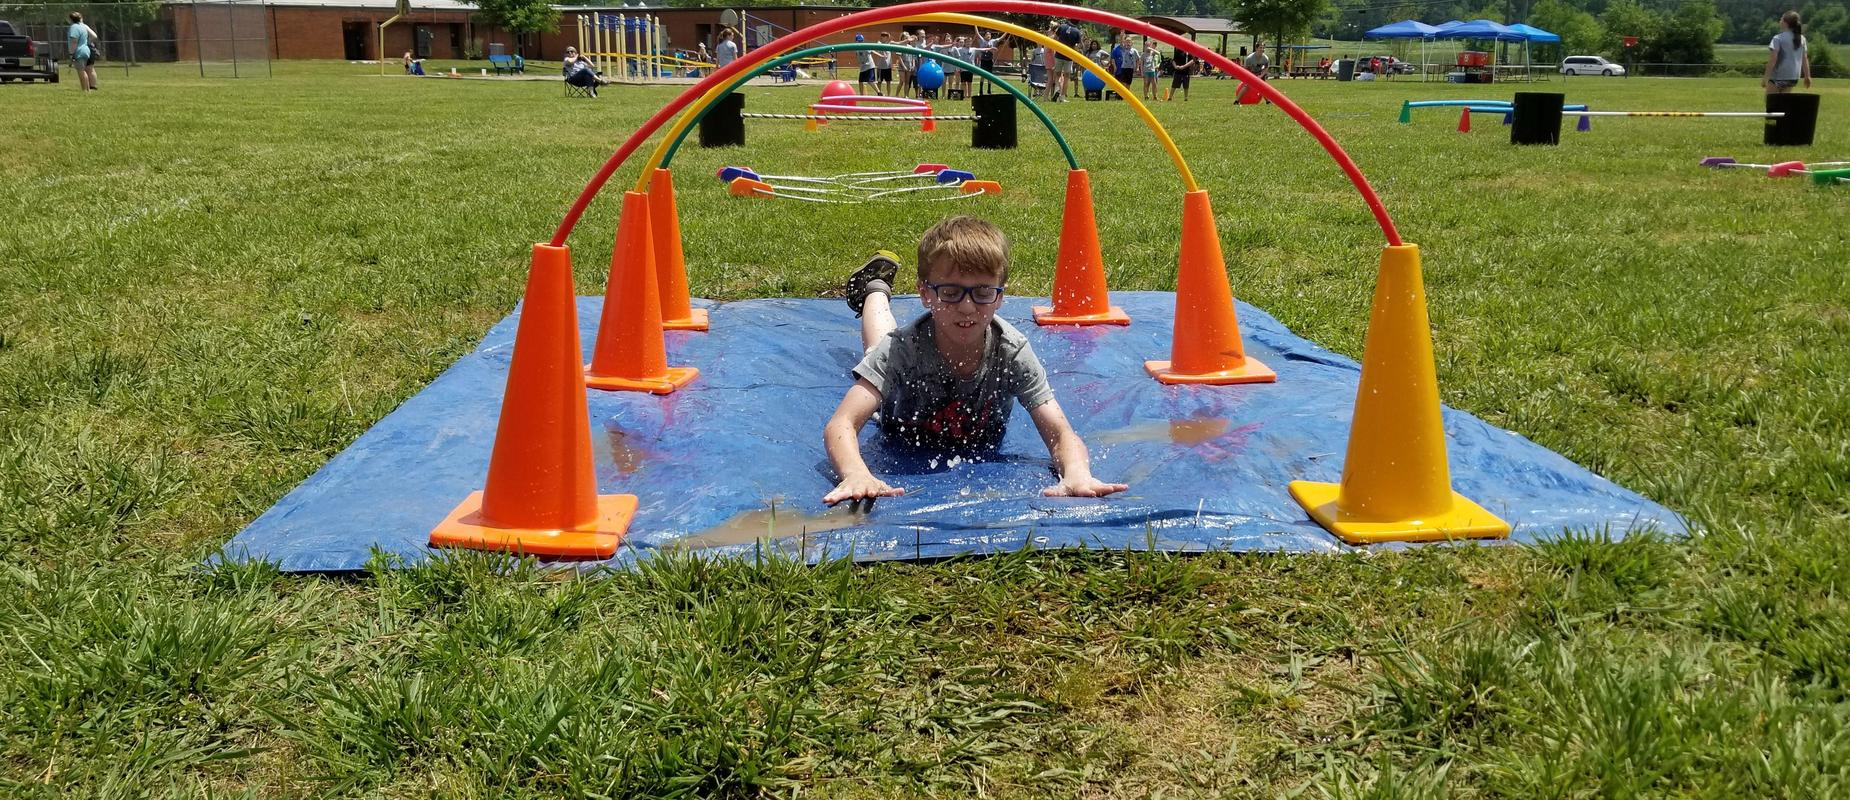 Field Day, Ninja Course